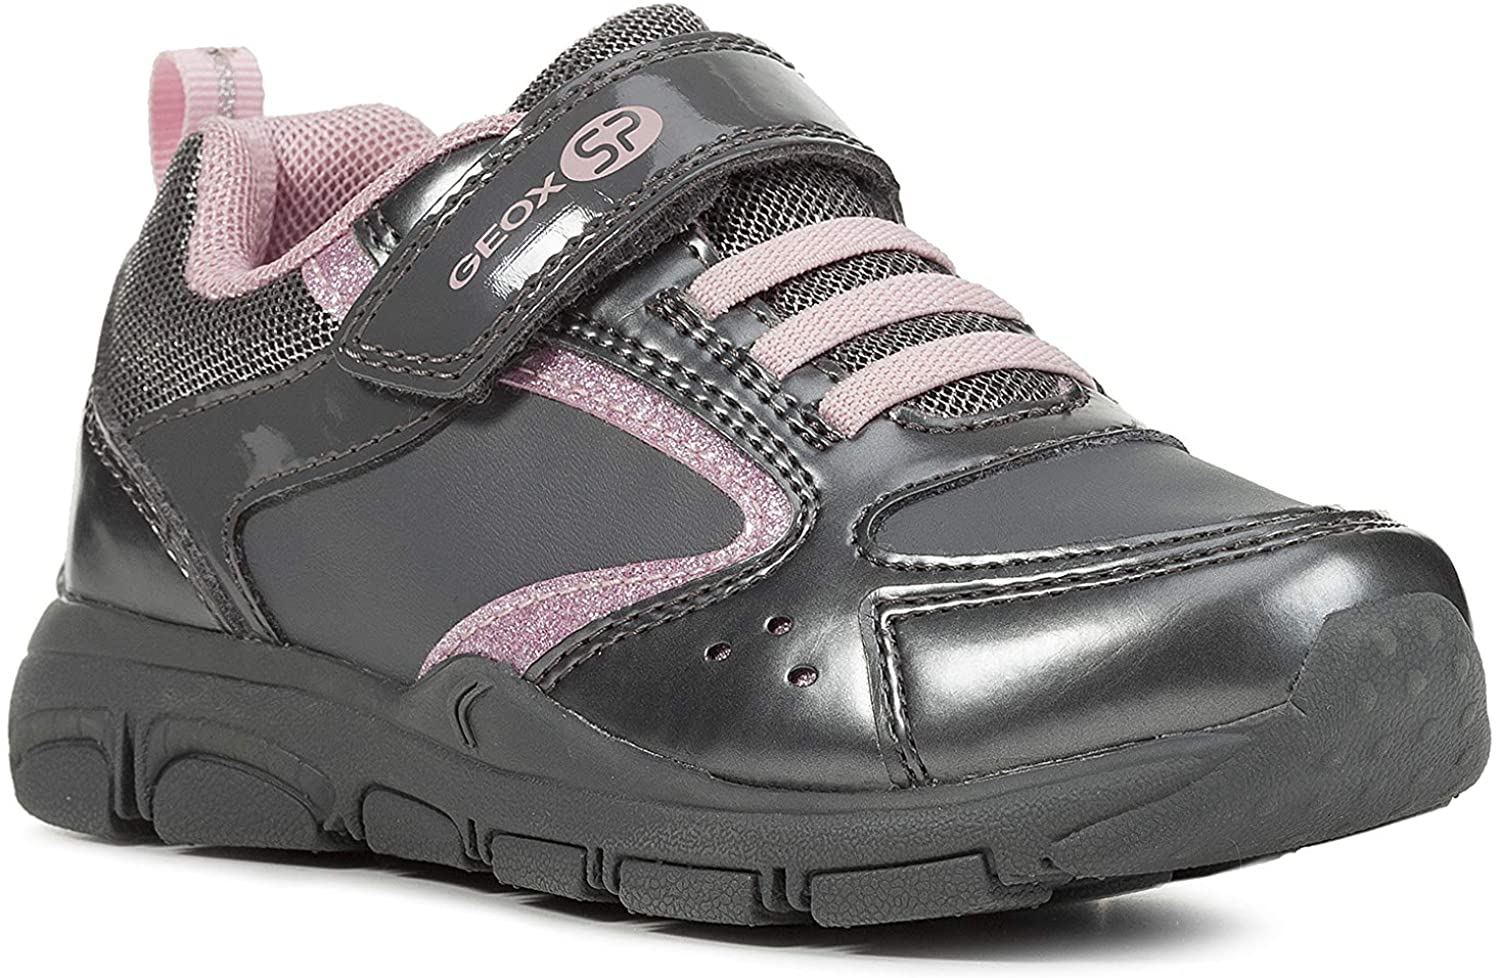 Geox Girls' New Torque 5 Sneakers Laces Riptape, Grey/Pink